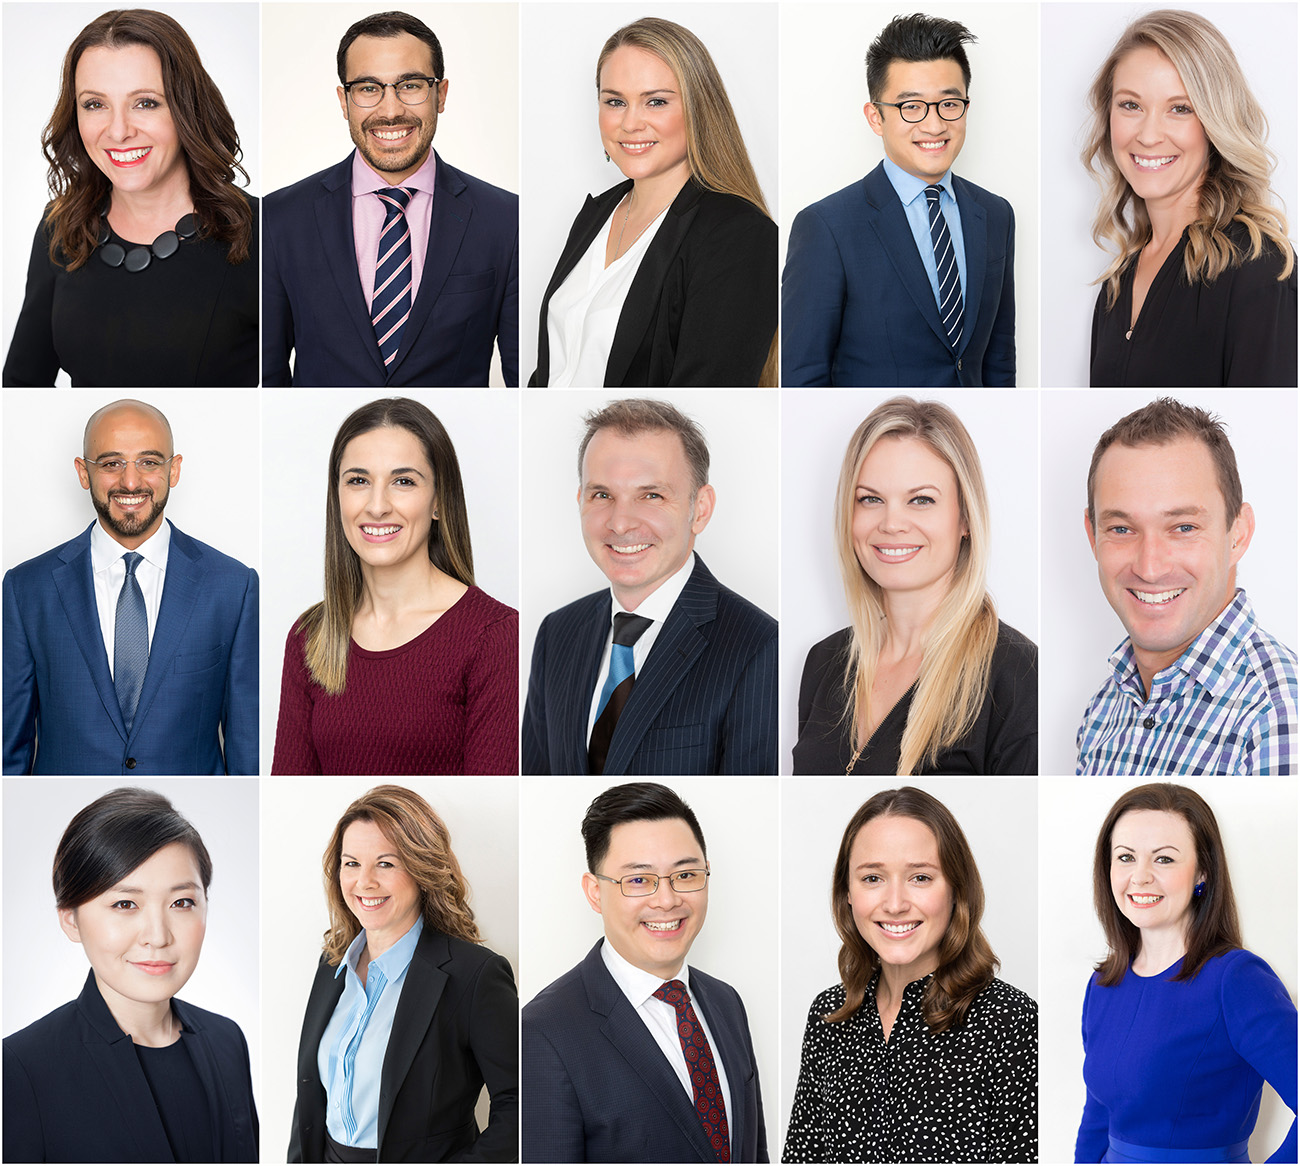 professional business portraits